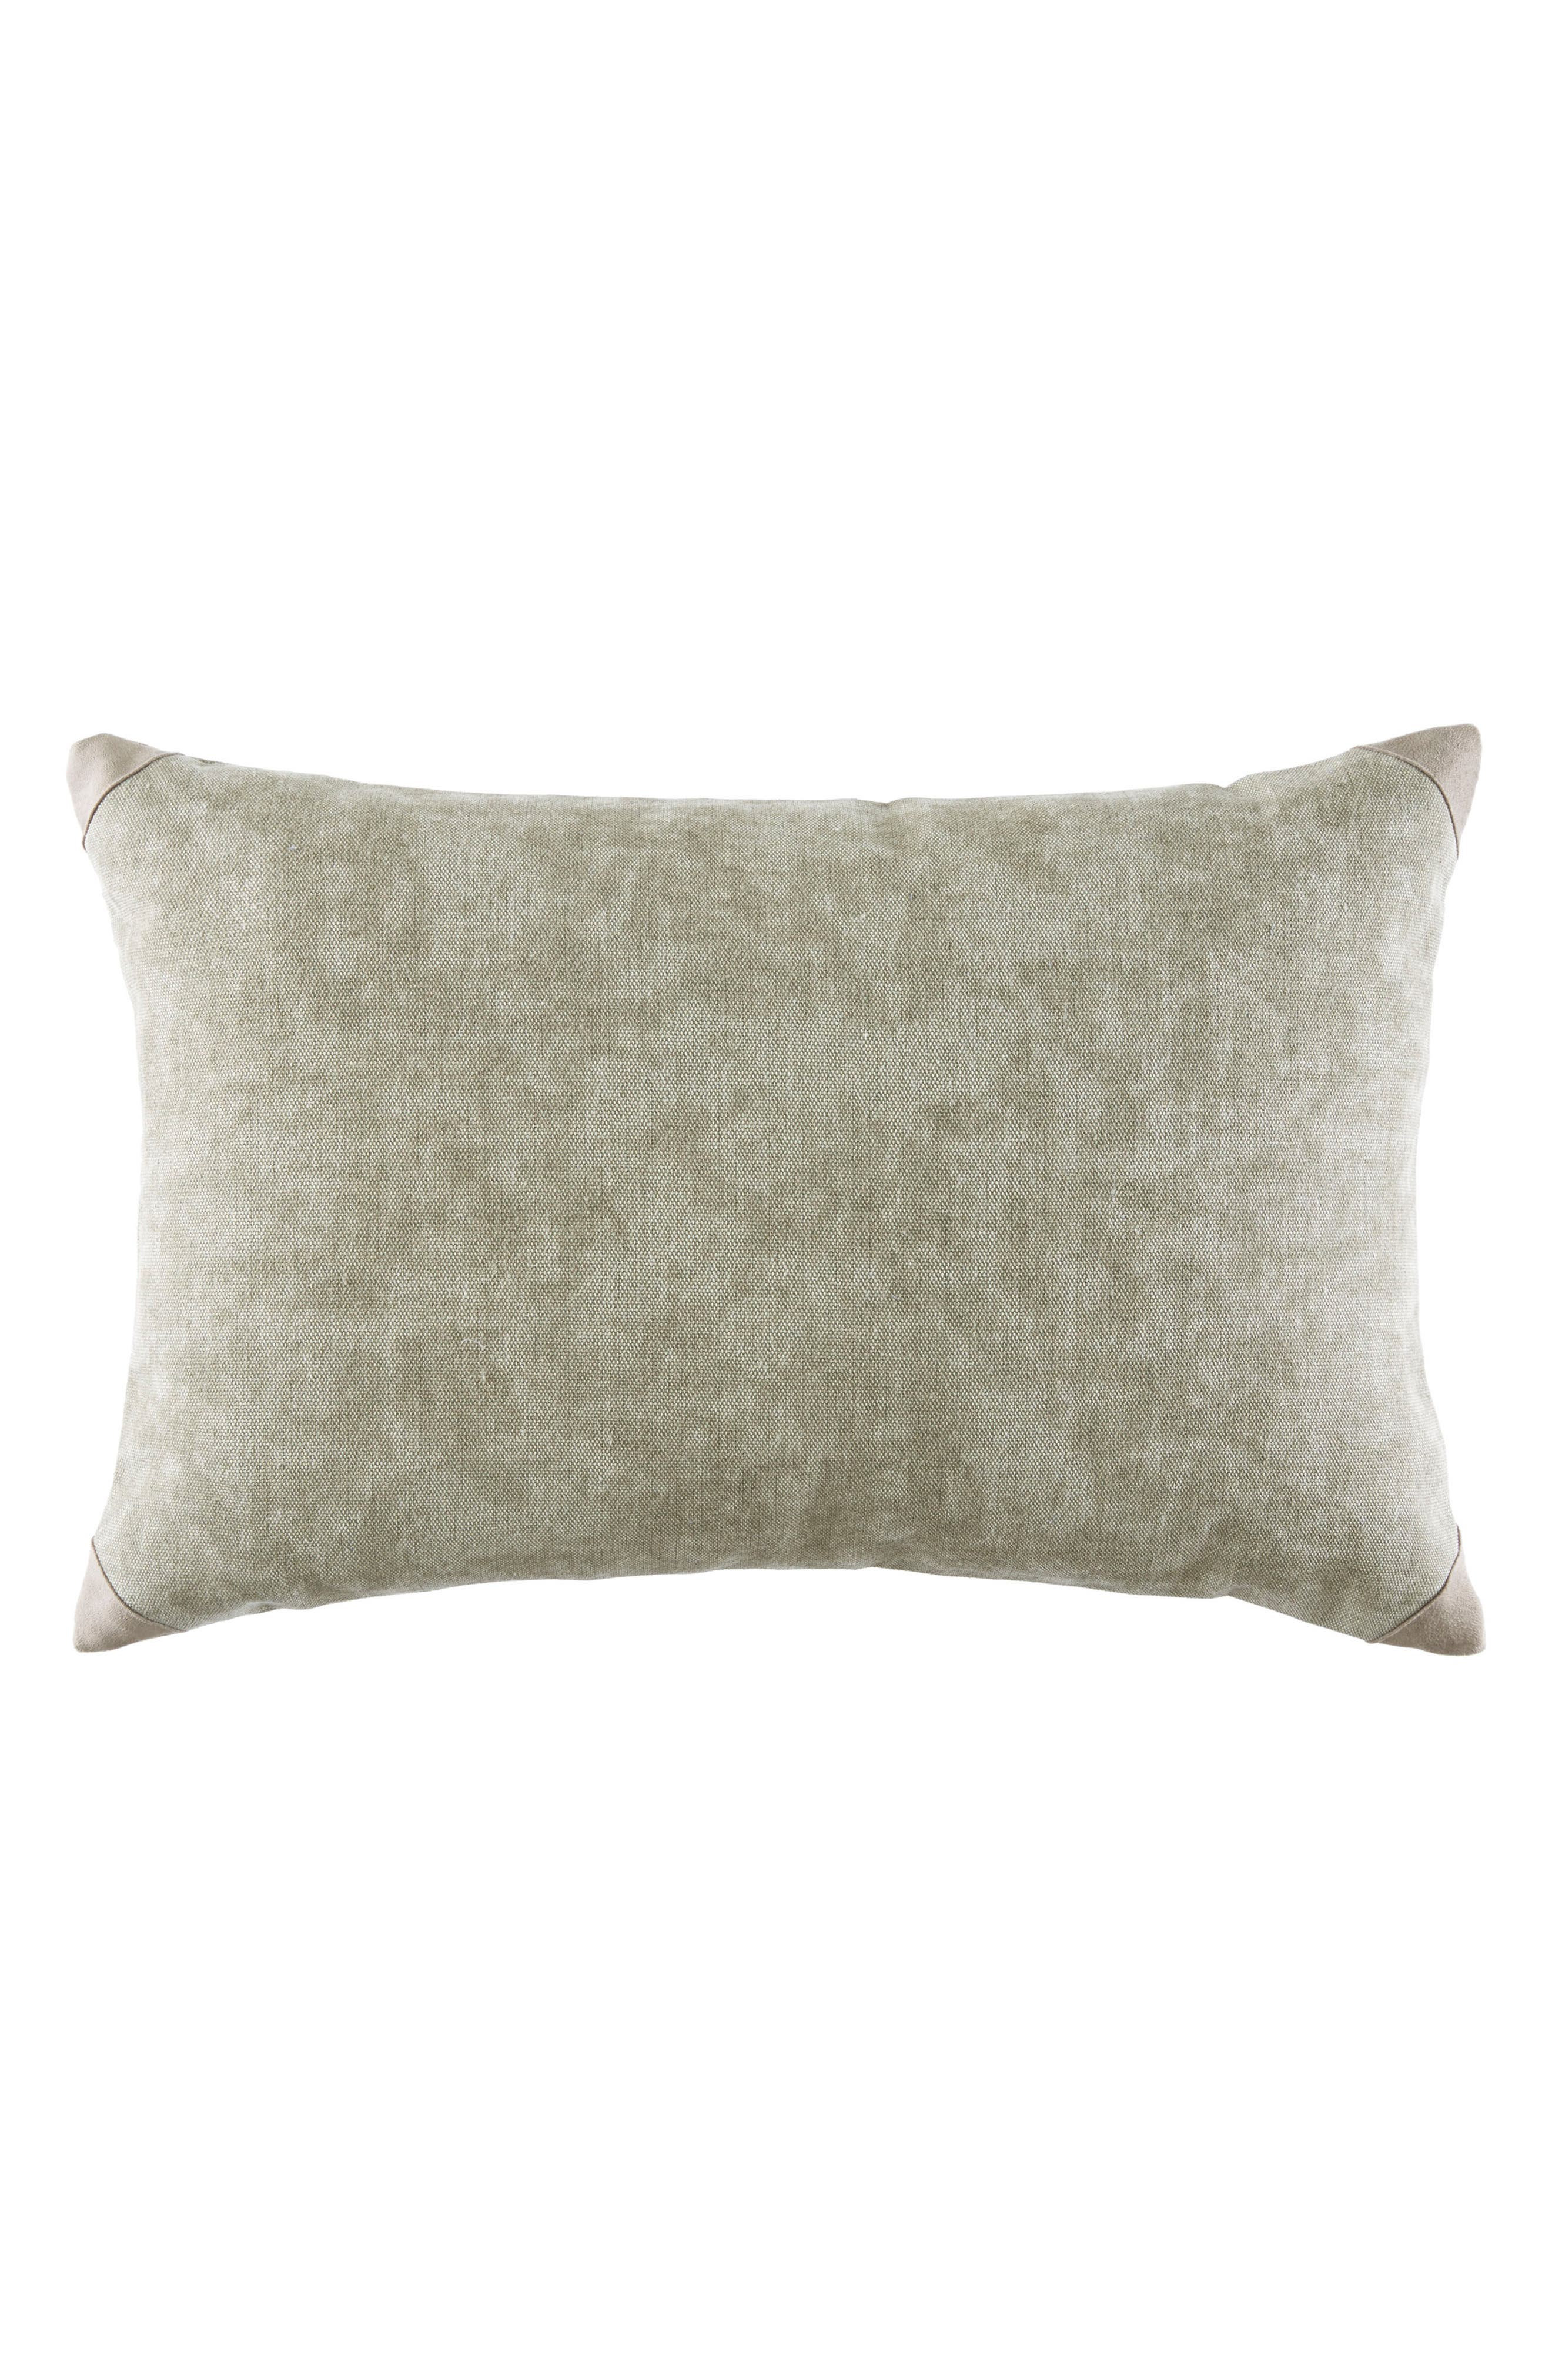 Elbow Patch Accent Pillow,                         Main,                         color,